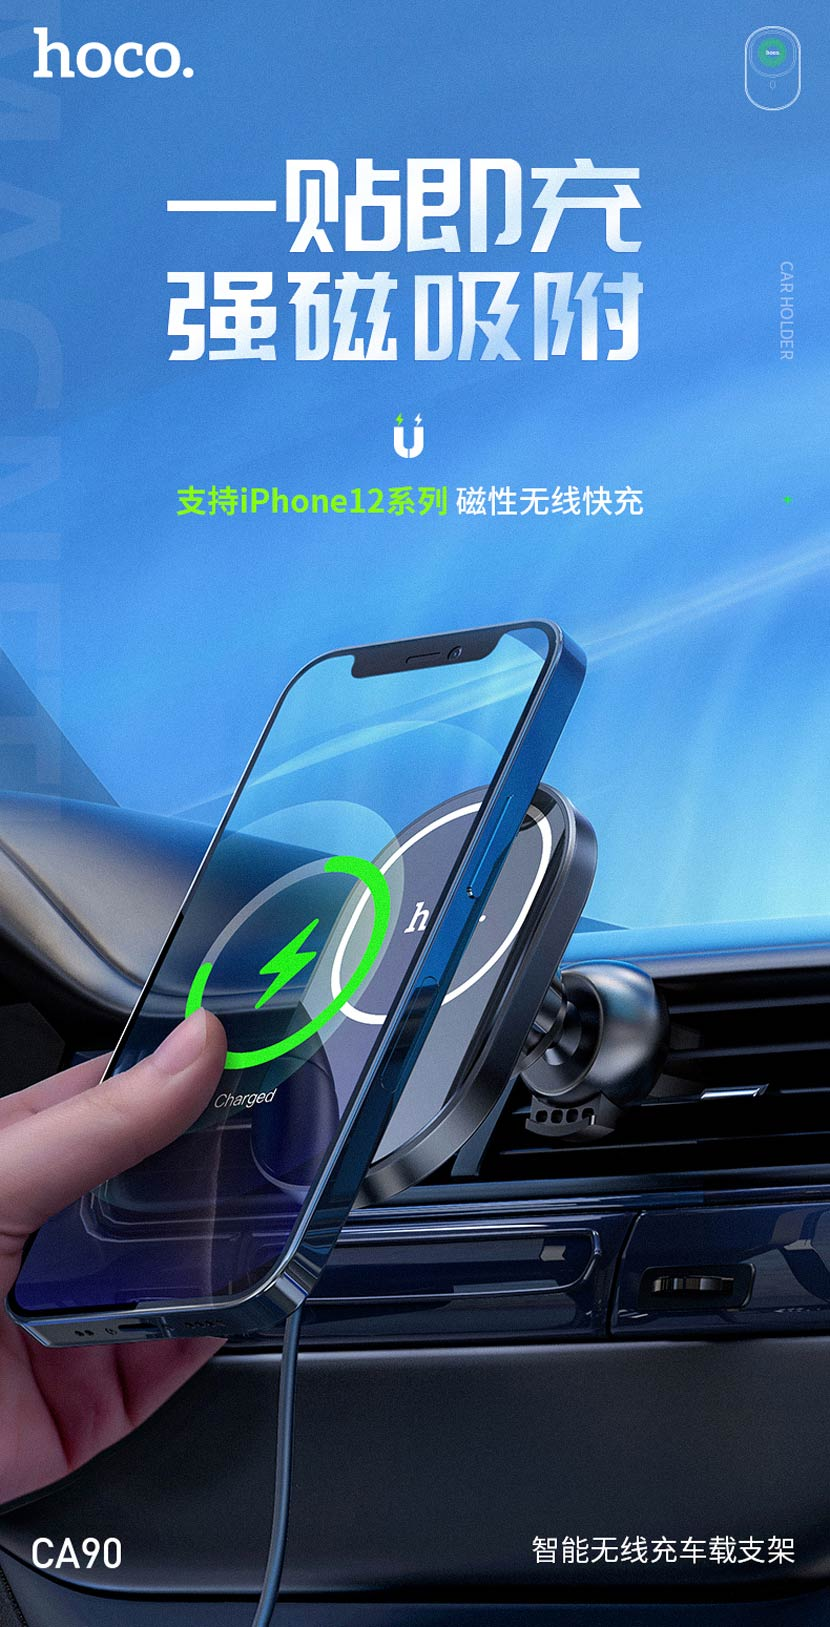 hoco news ca90 powerful magnetic car holder with wireless charging cn